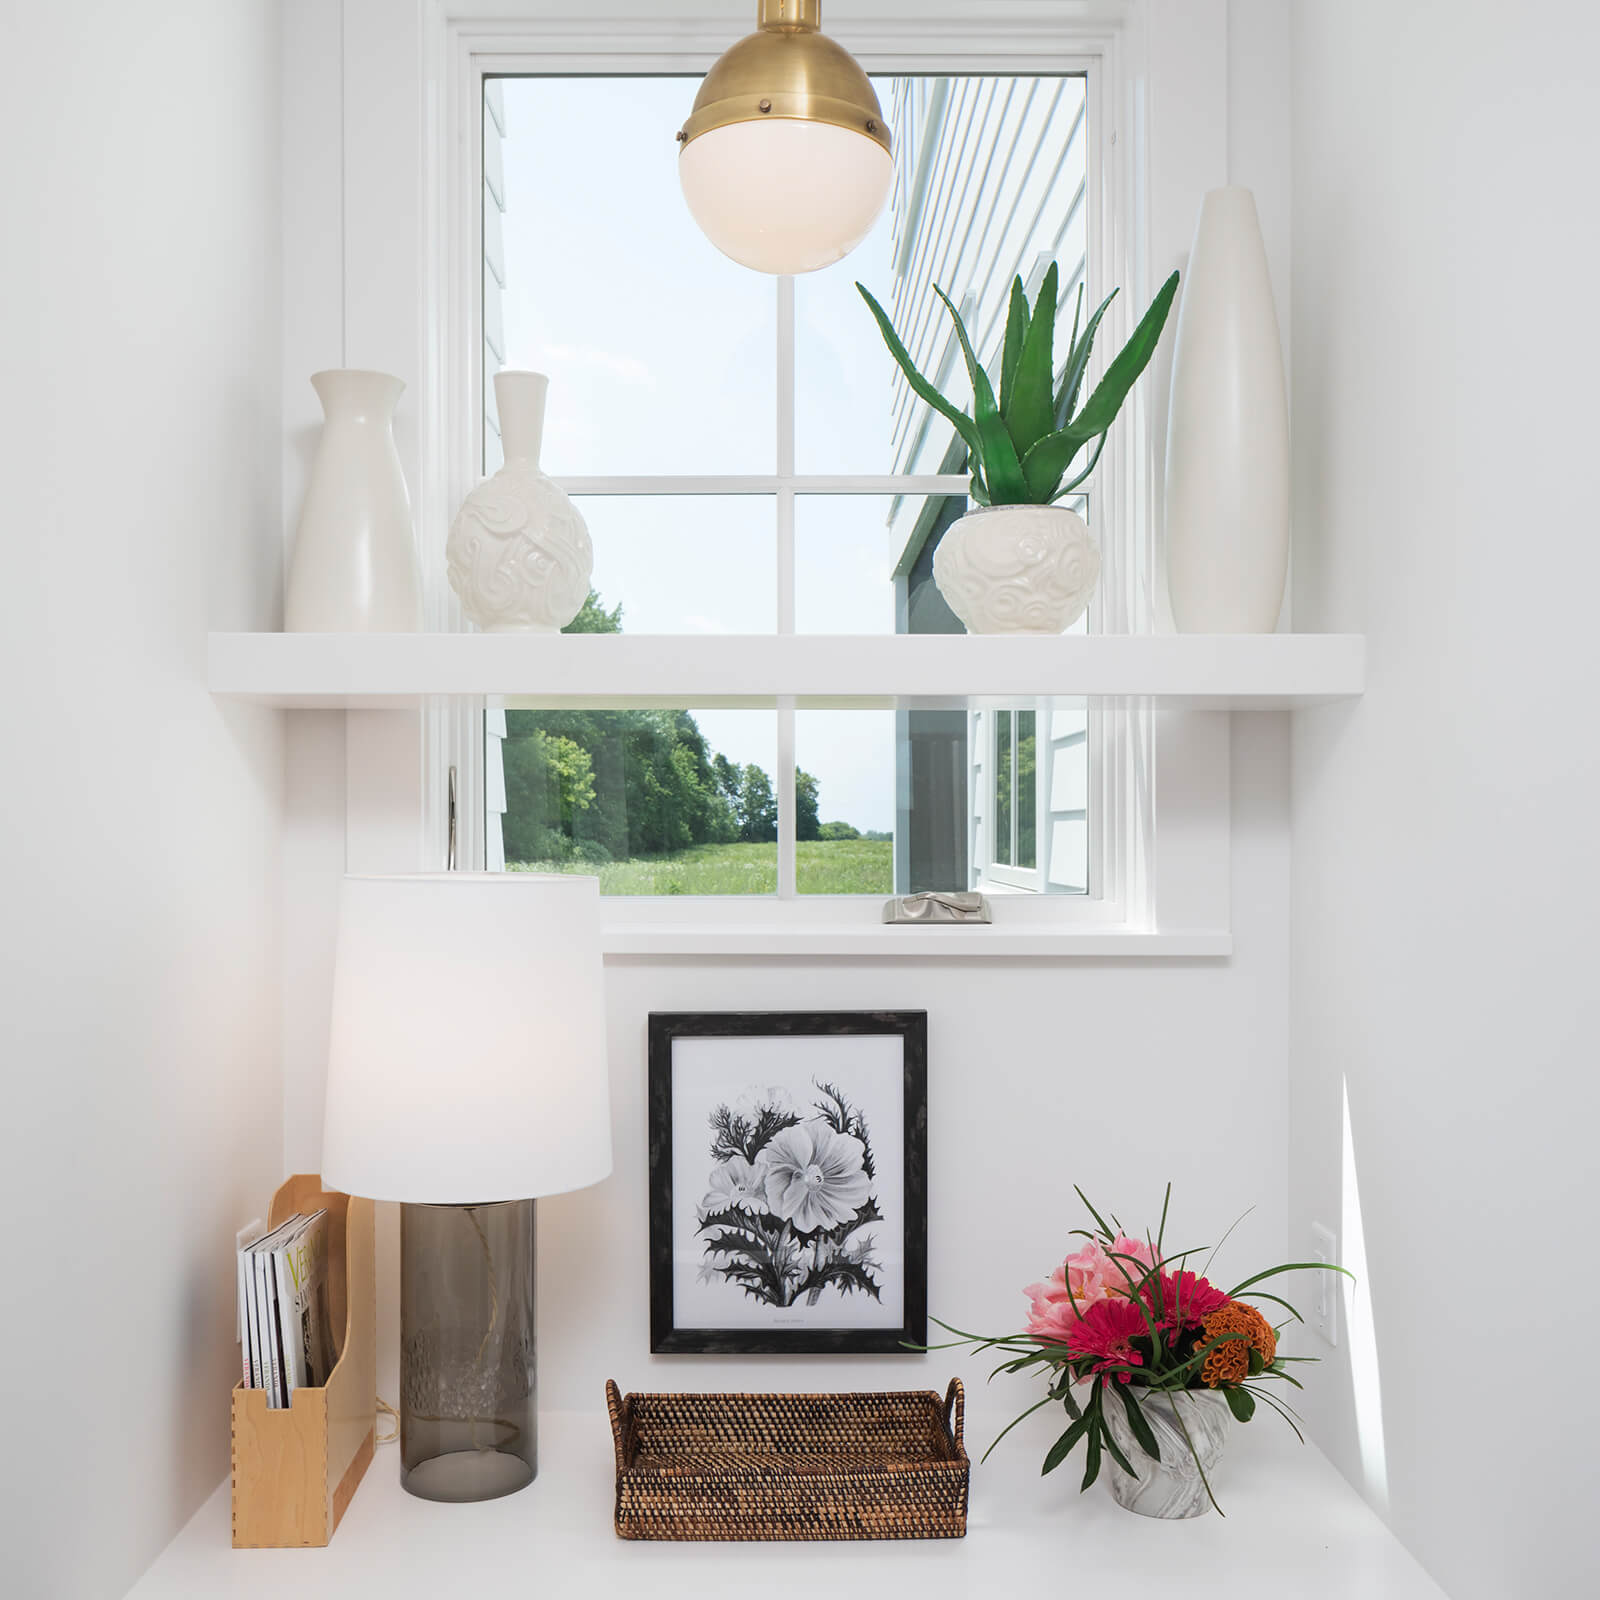 Small desk area with Marvin Elevate Casement Window